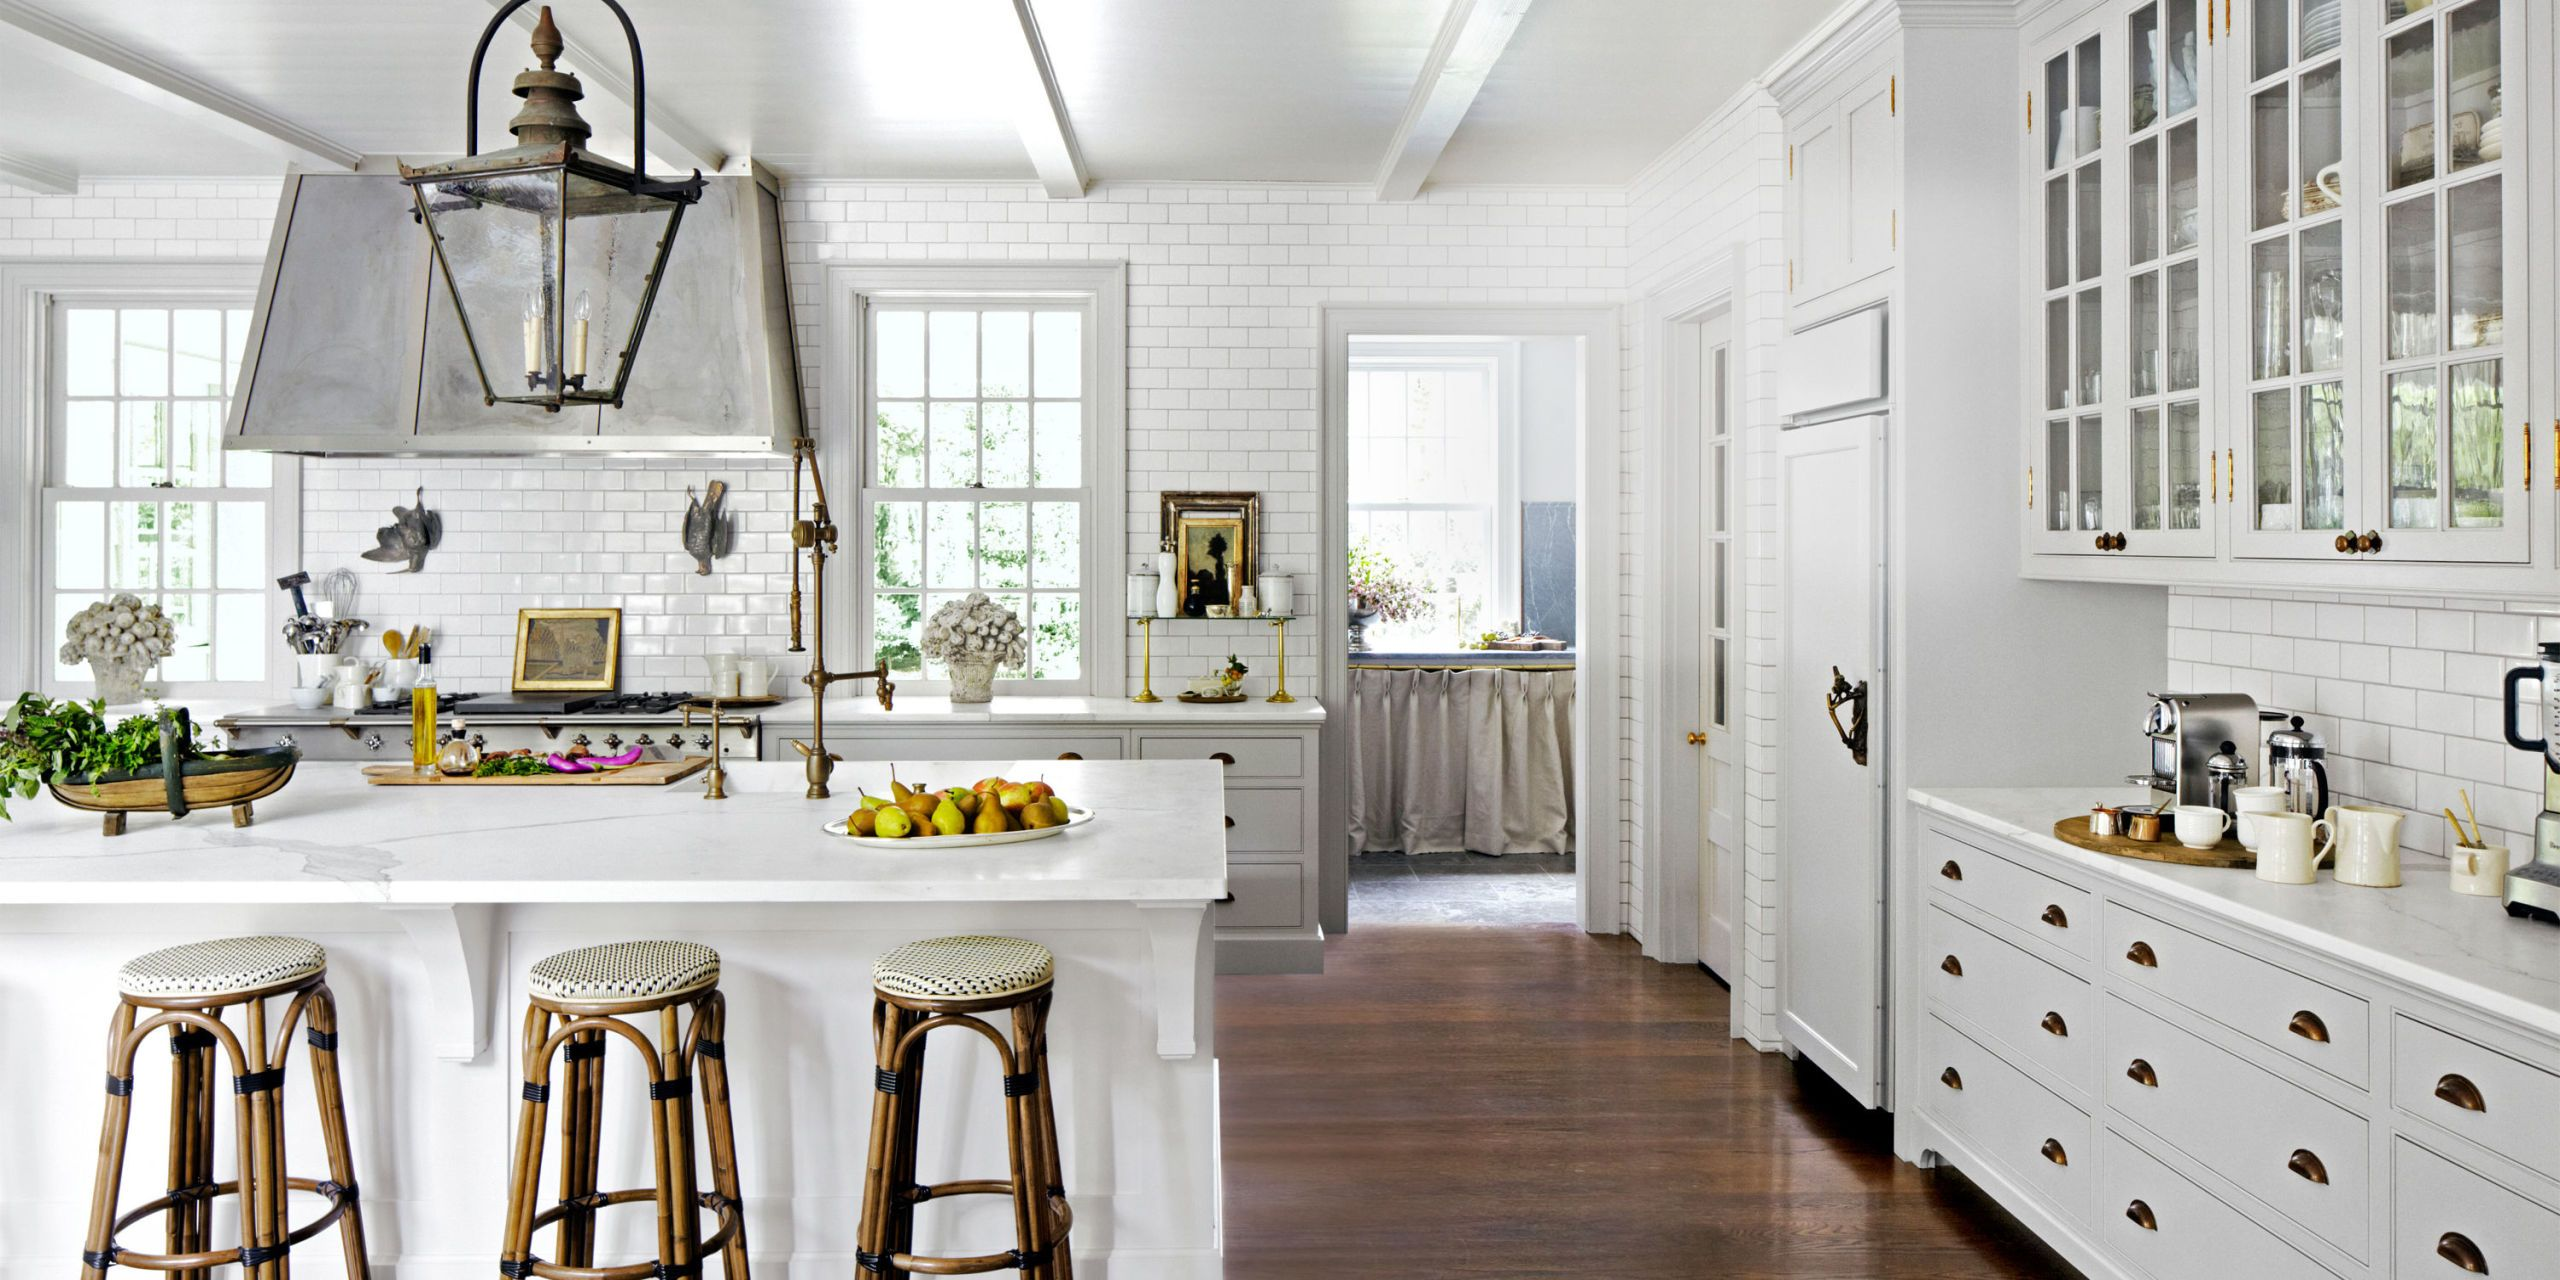 Genial You Canu0027t Go Wrong With White In The Kitchen, So Sit Back And Let These  Fabulous Ideas And Pictures Inspire You To Take Your Kitchen From Drab To  Dazzling.